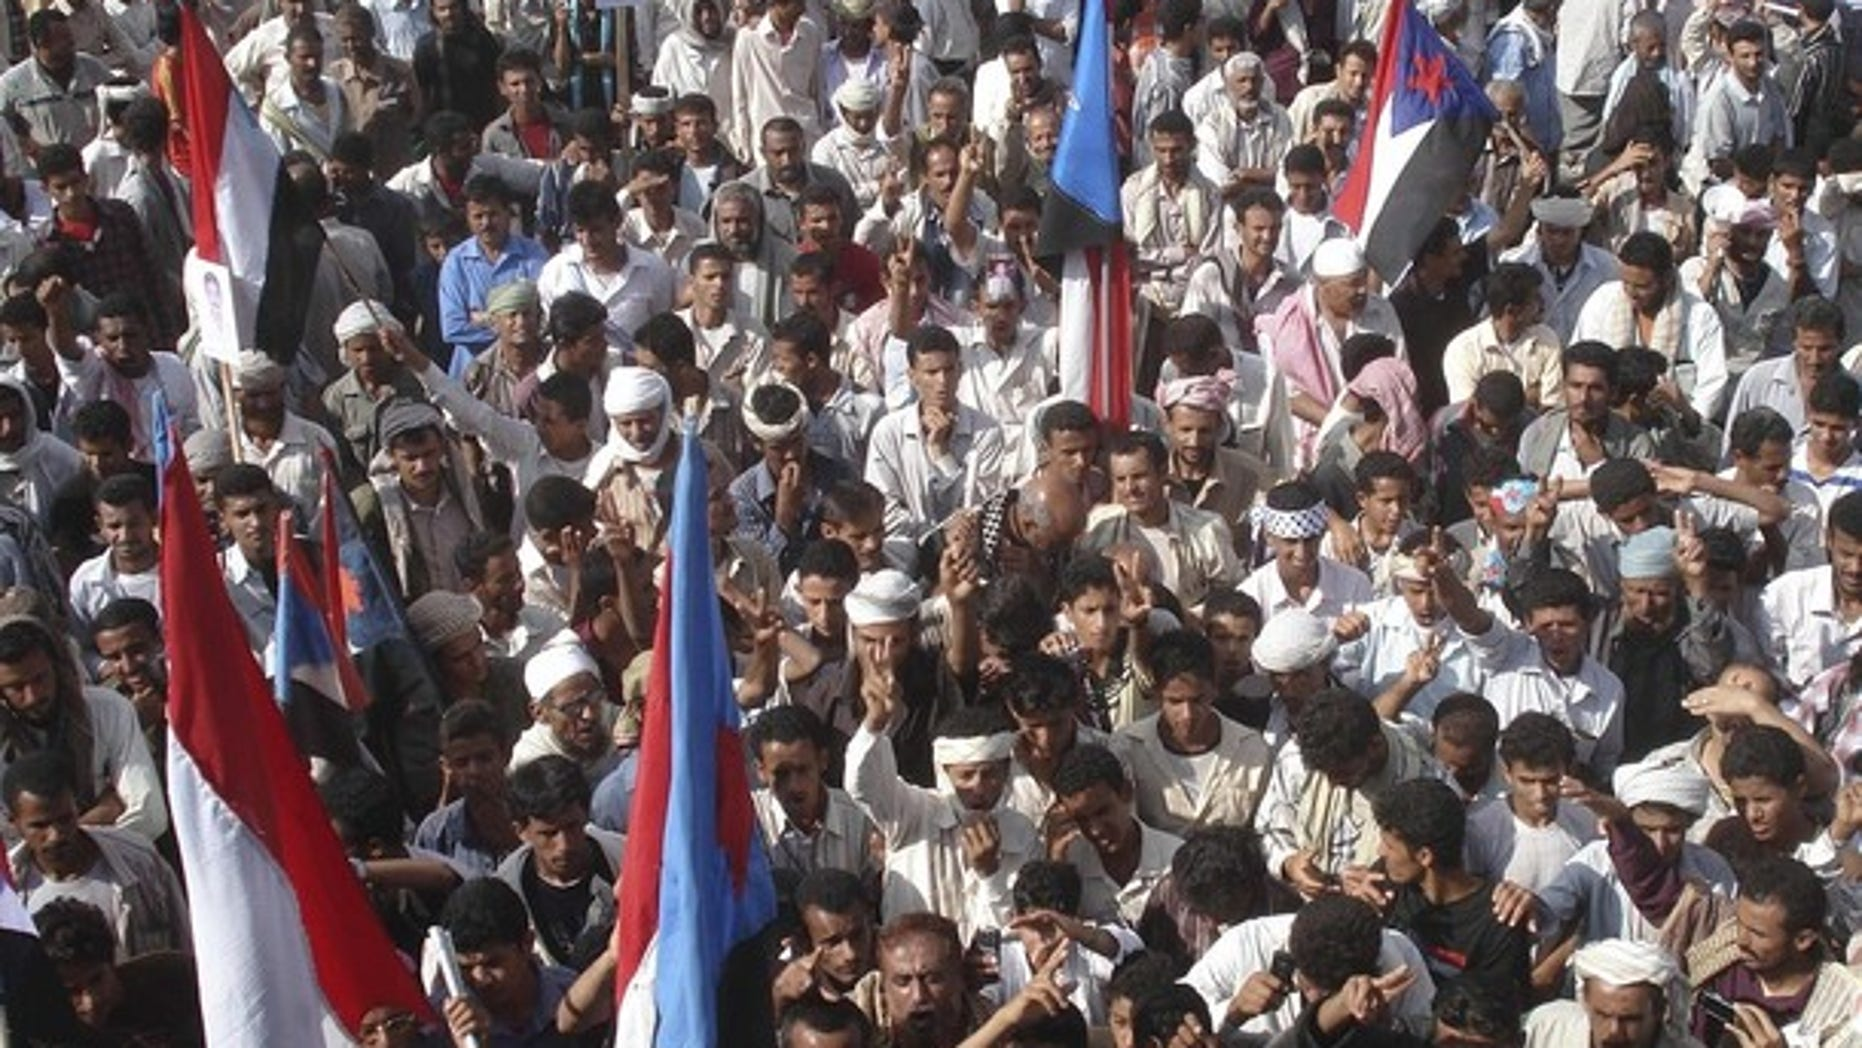 Dec. 17: Protesters wave flags of former South Yemen as they shout slogans during anti-government rallies organized by the Southern Movement to demand southern Yemen secede from the northern half (Reuters).